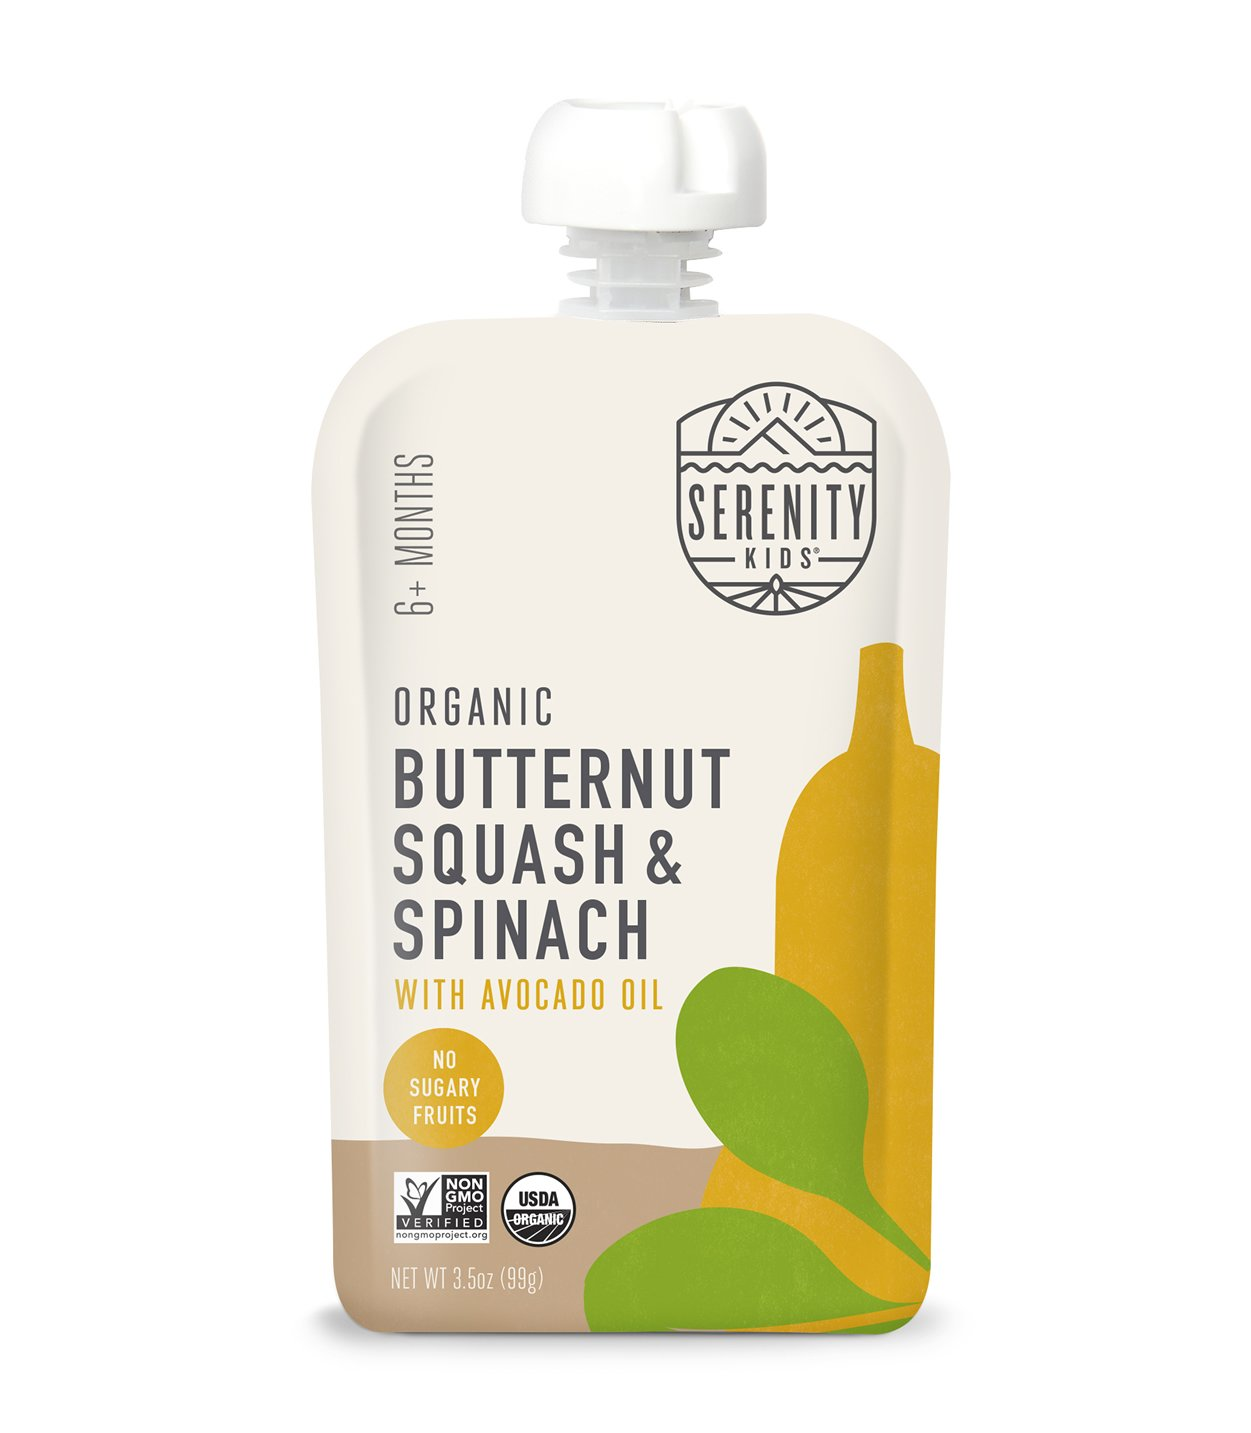 Organic Butternut Squash and Spinach